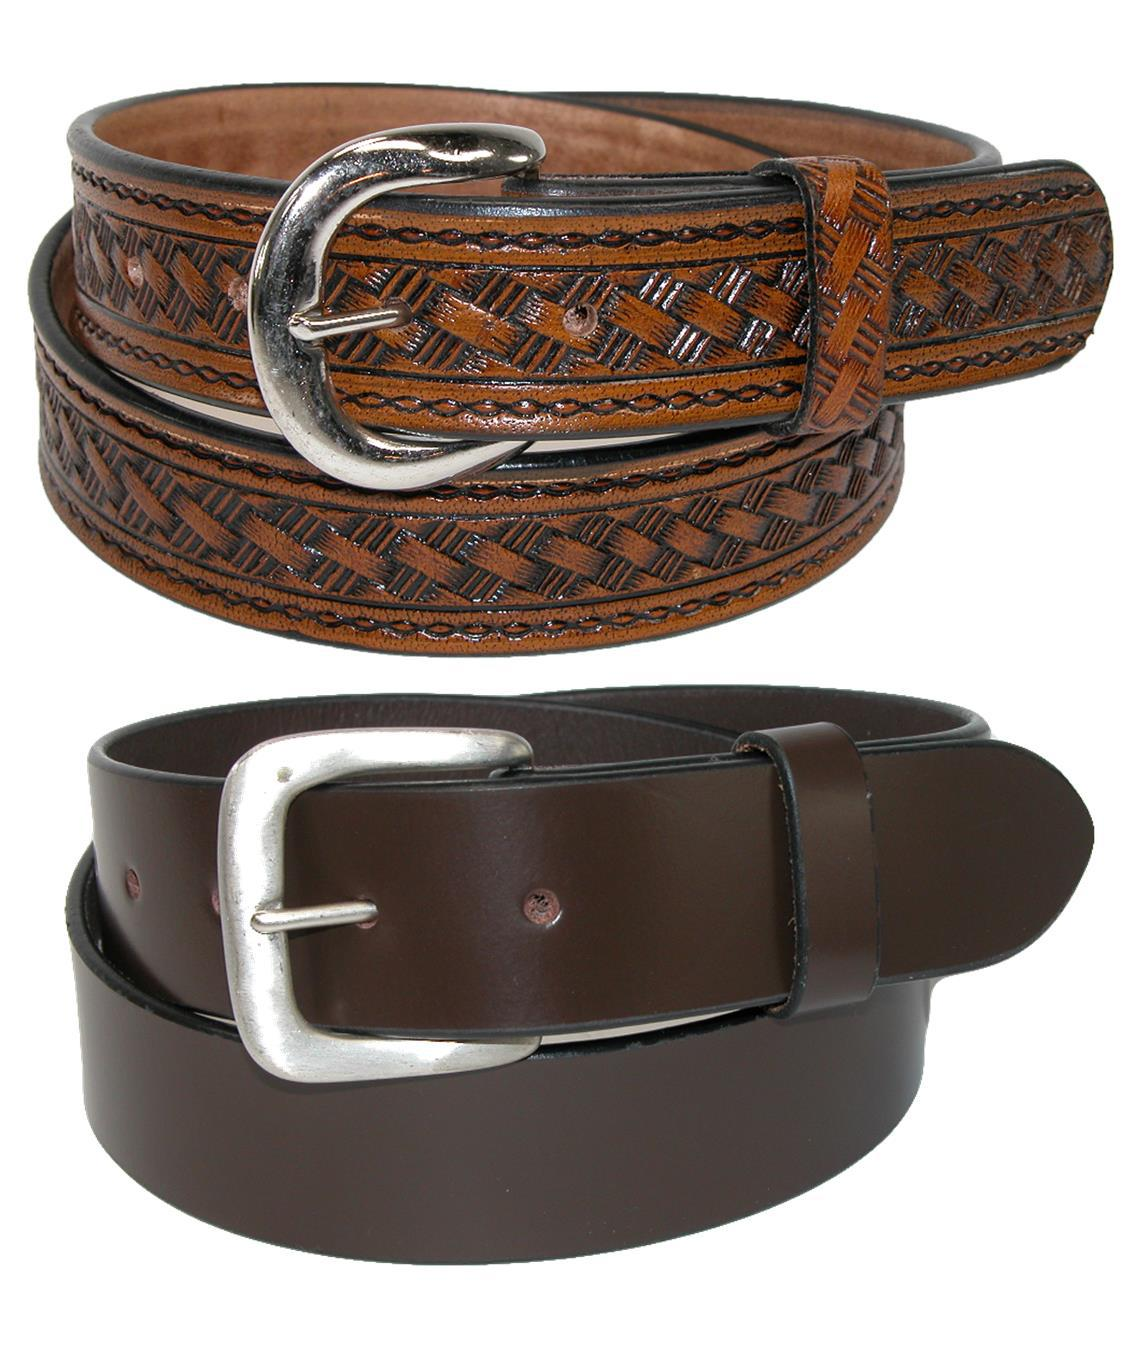 Ctm Men's Leather 1 3/8 Inch Removable Buckle Belts (pack Of 2)